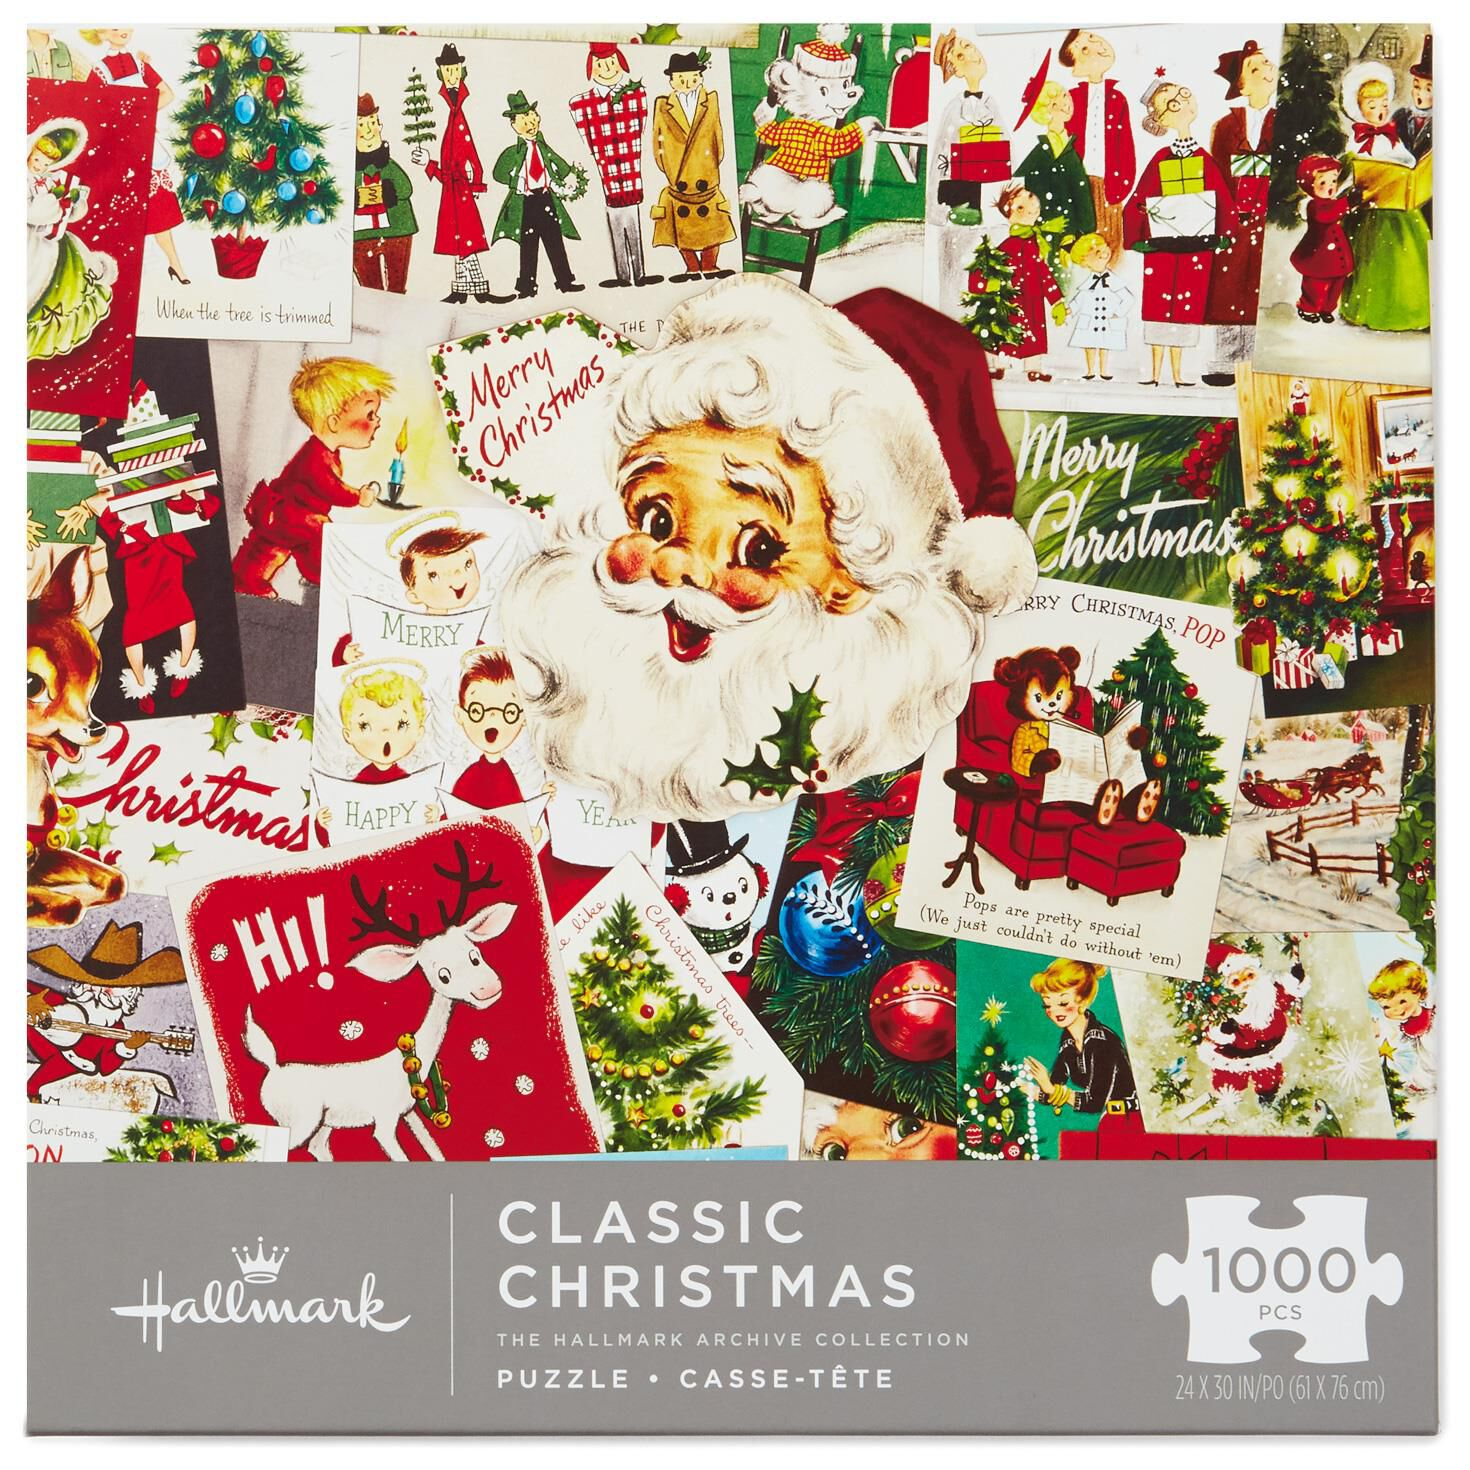 classic christmas vintage greeting cards 1000 piece puzzle puzzles games hallmark - Classic Christmas